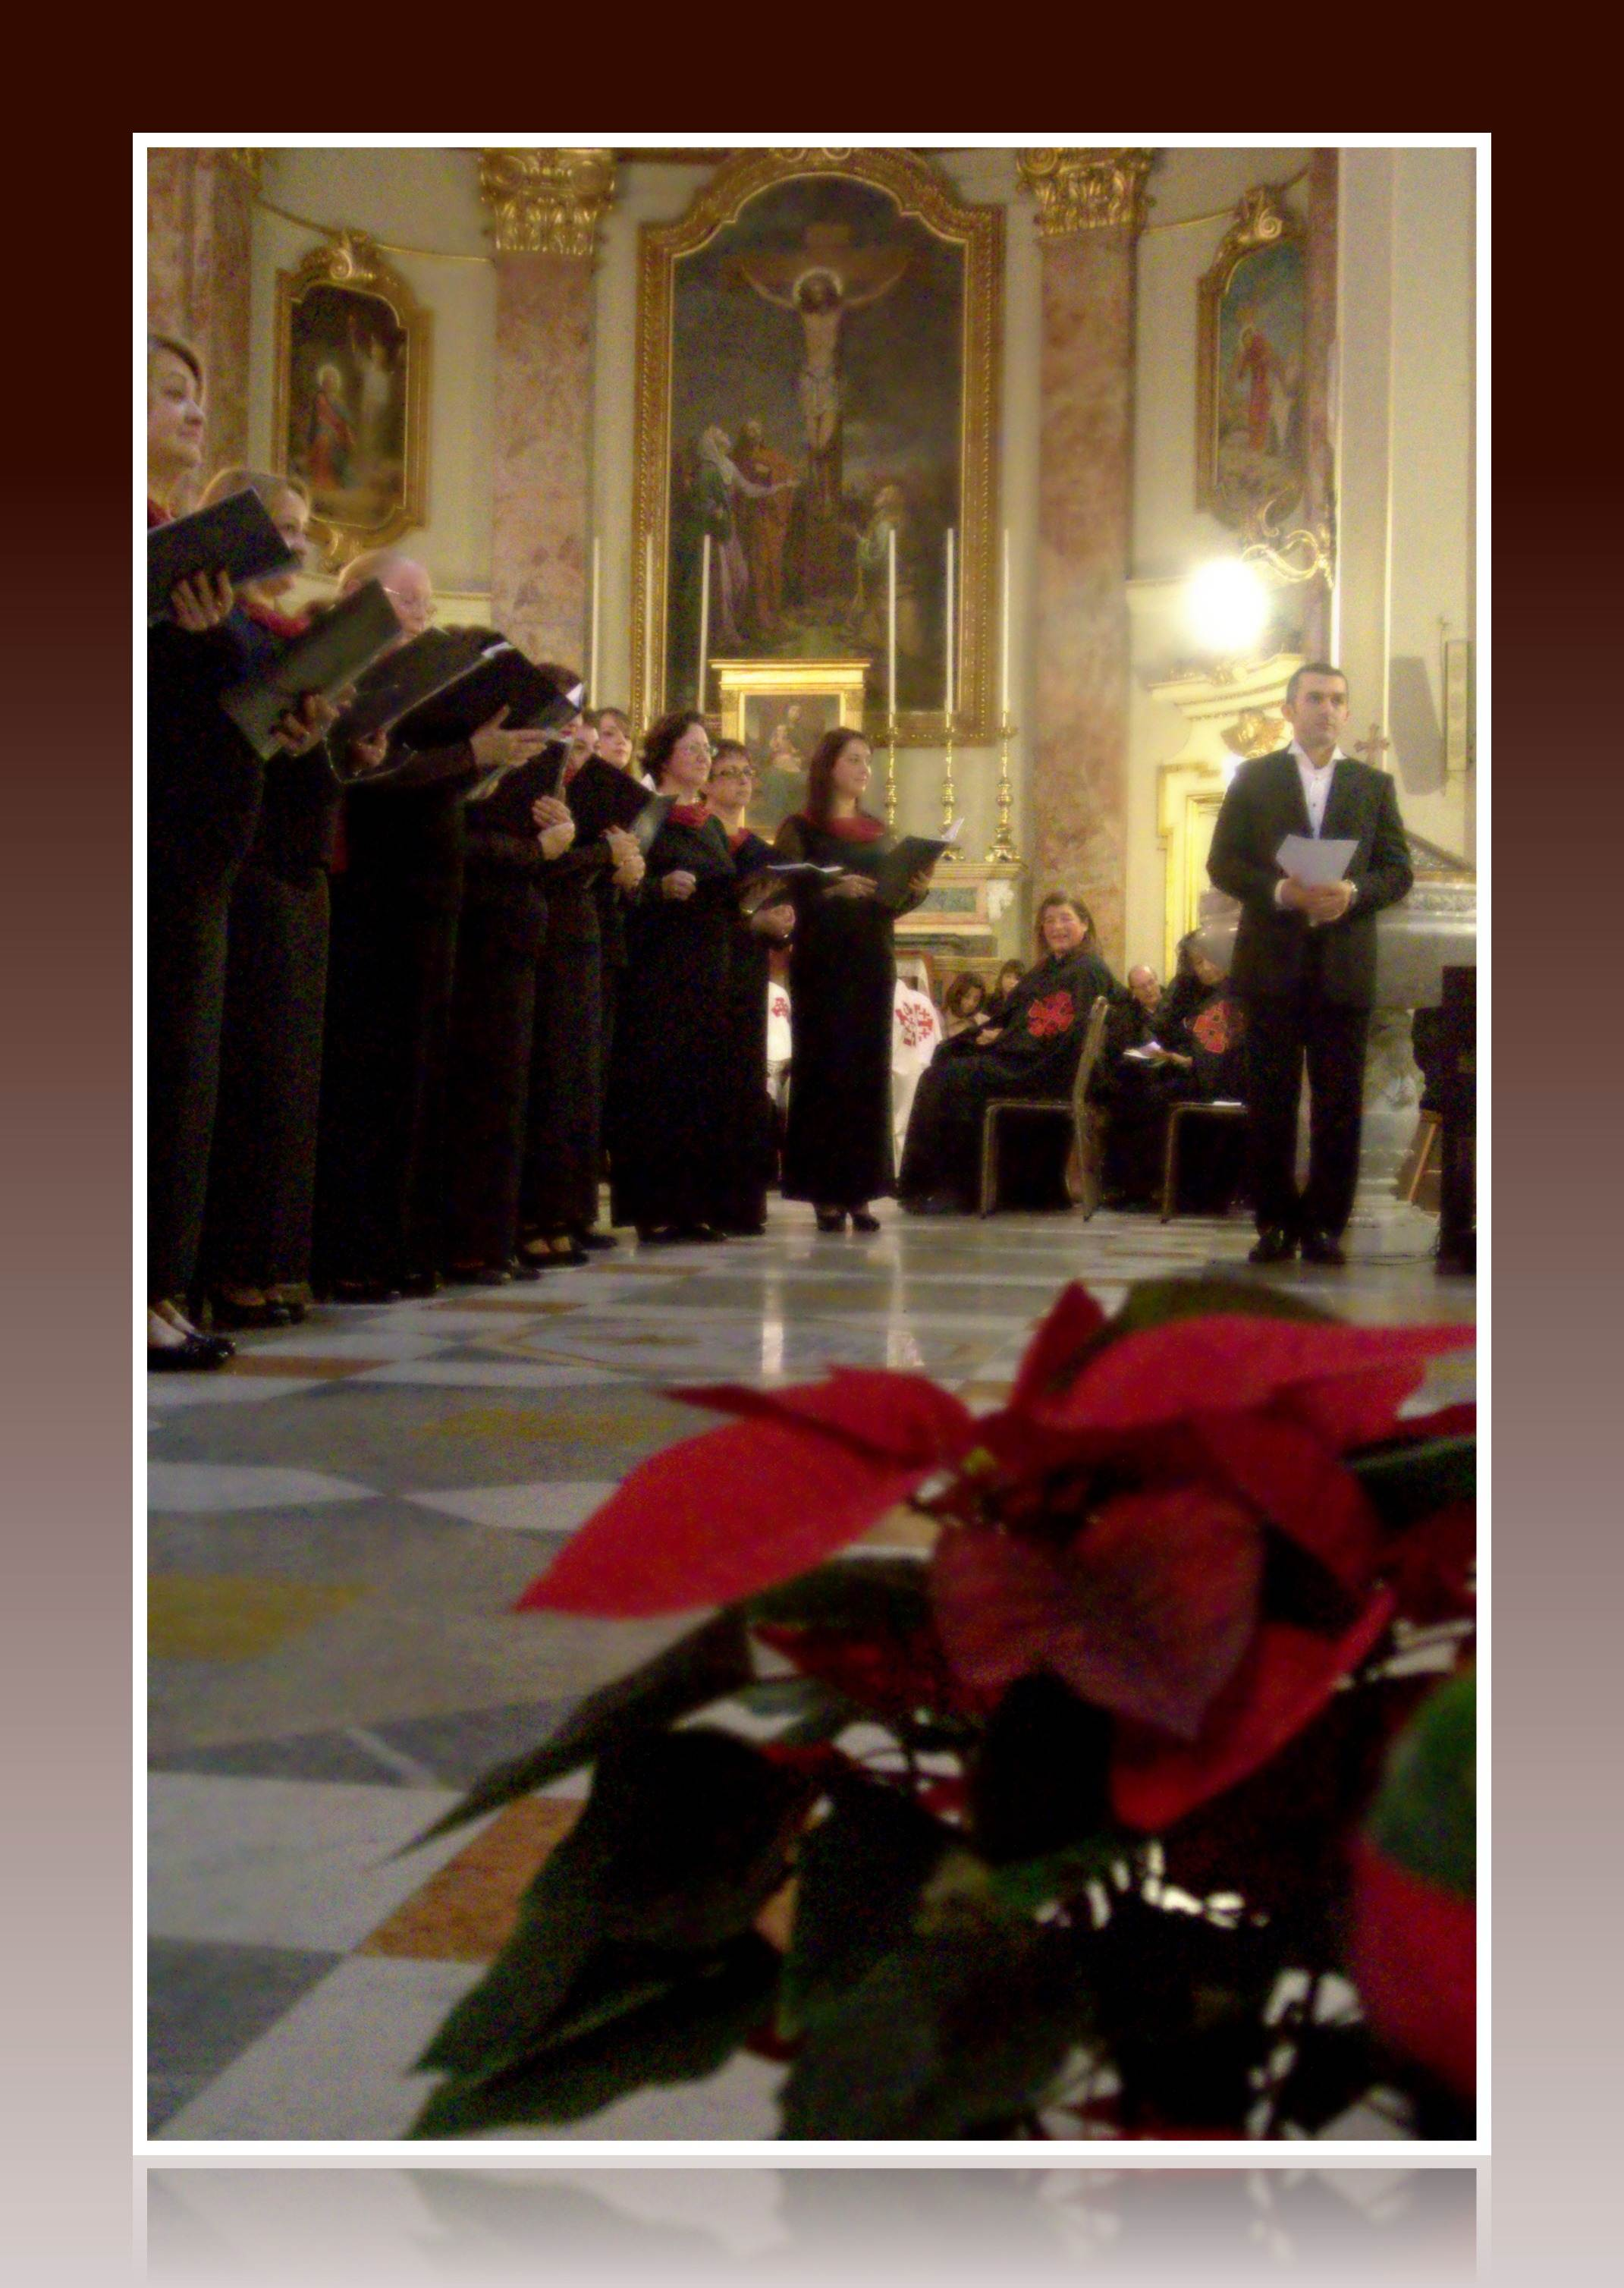 TNCS at Floriana Parish Church - 13 December 2013 - Photo by Claudine Despott